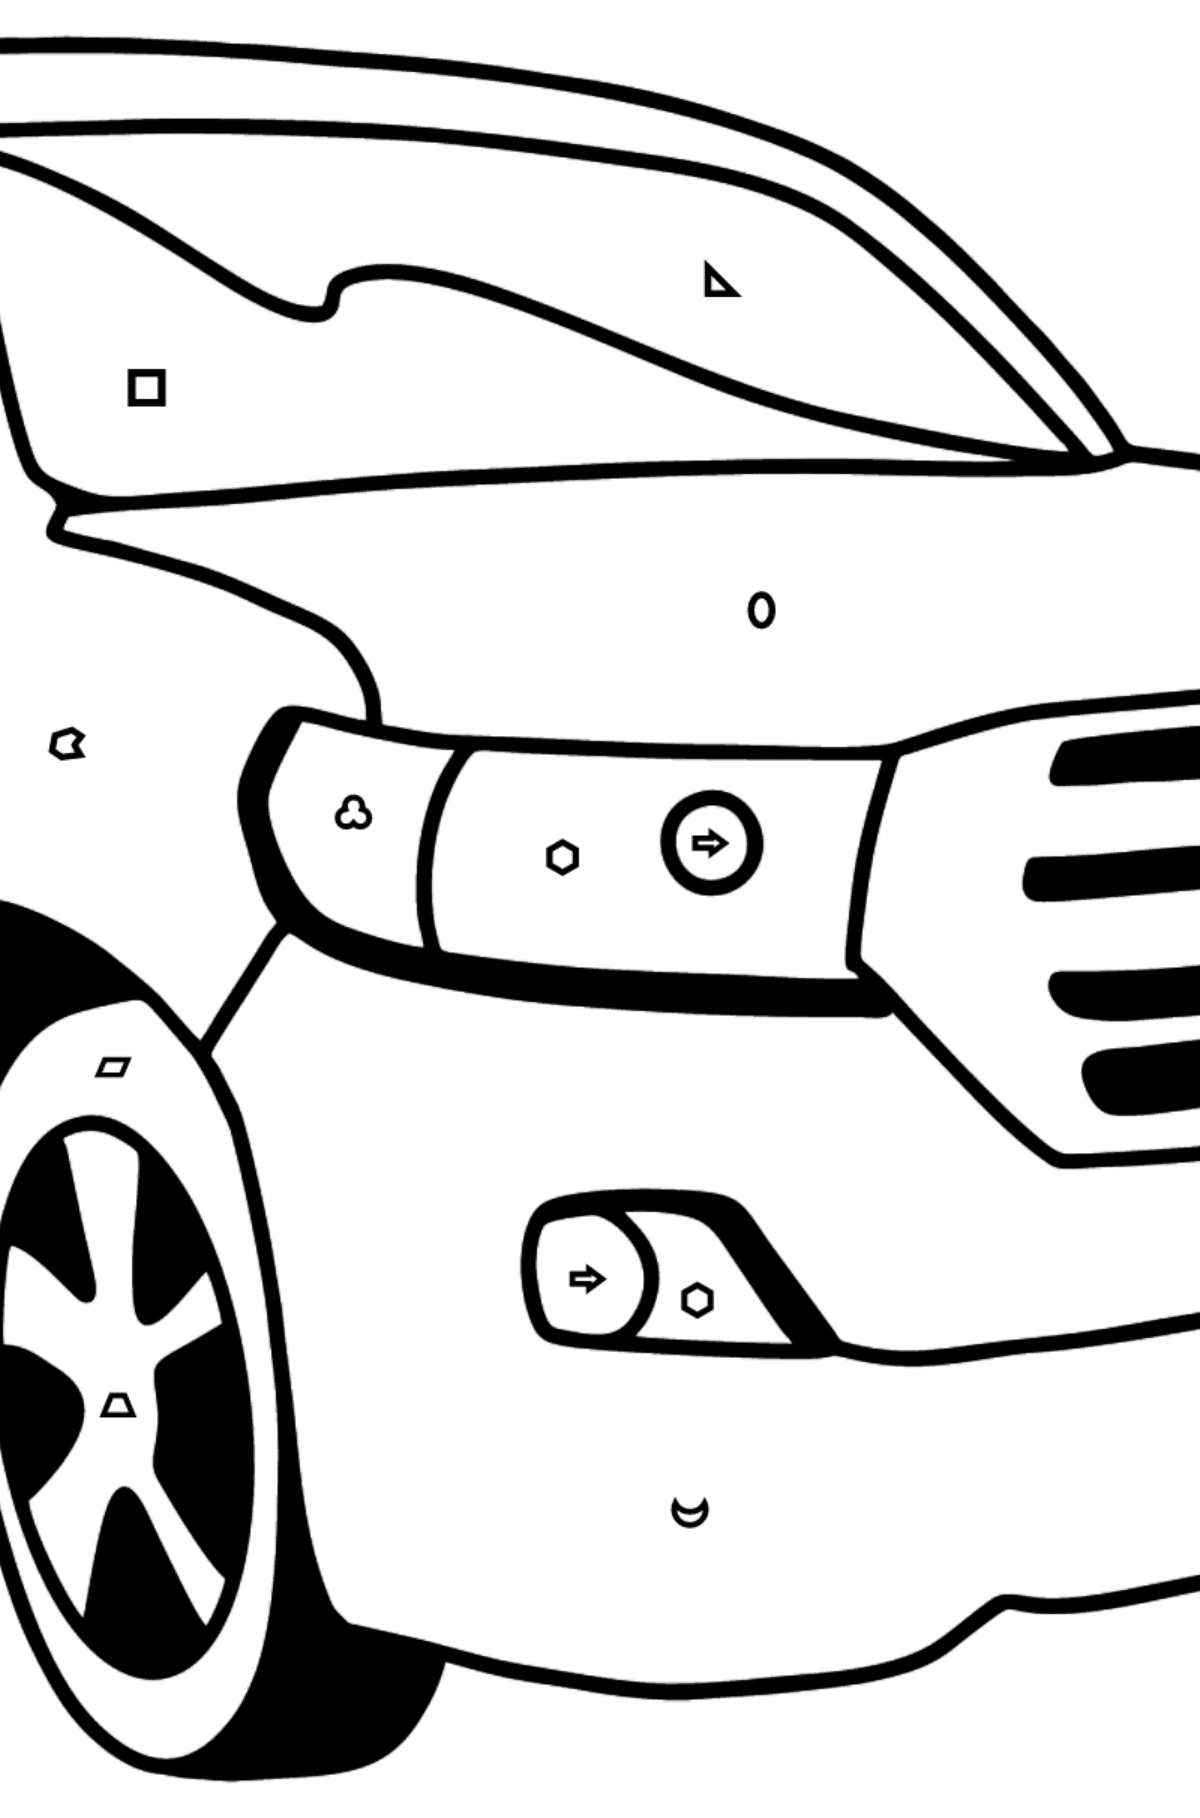 Toyota Land Cruiser Car coloring page - Coloring by Geometric Shapes for Kids